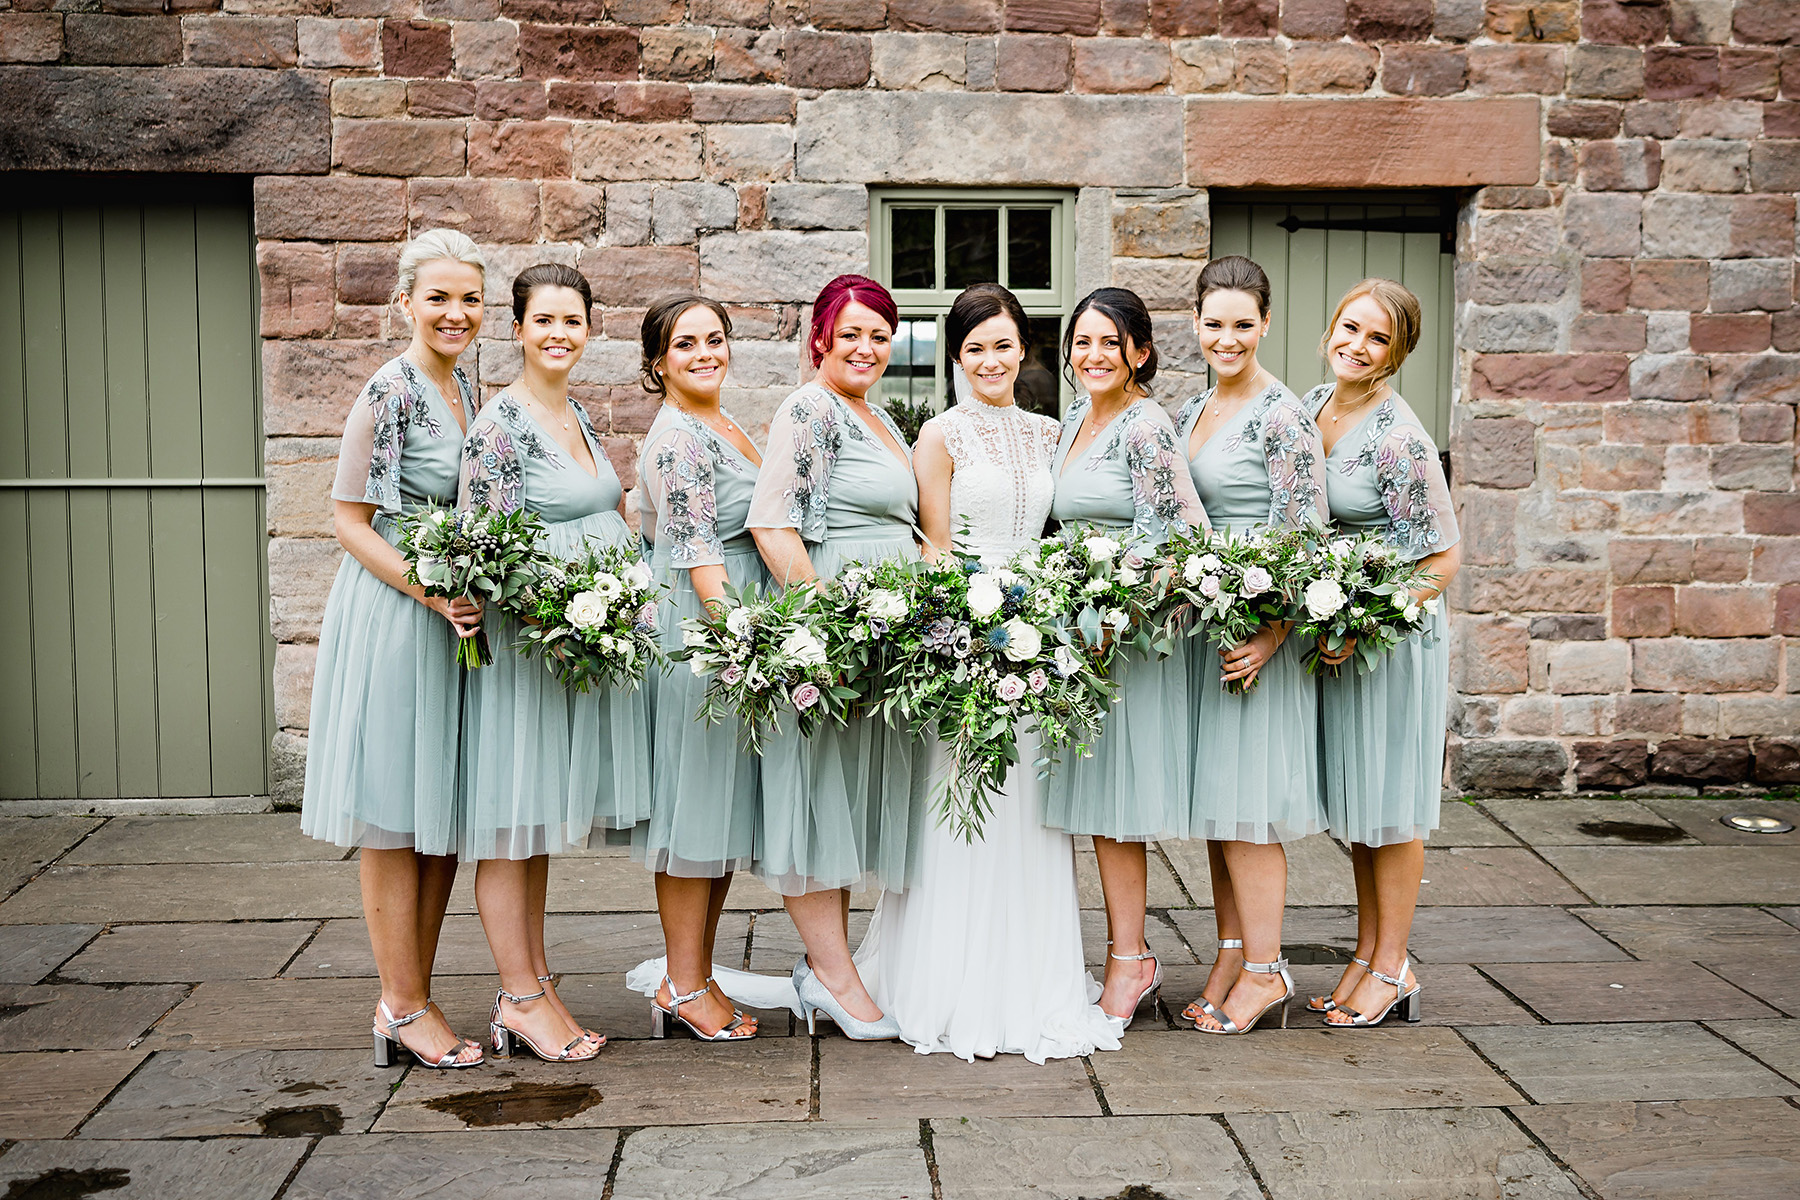 Bridal Party at The Ashes Wedding Venue